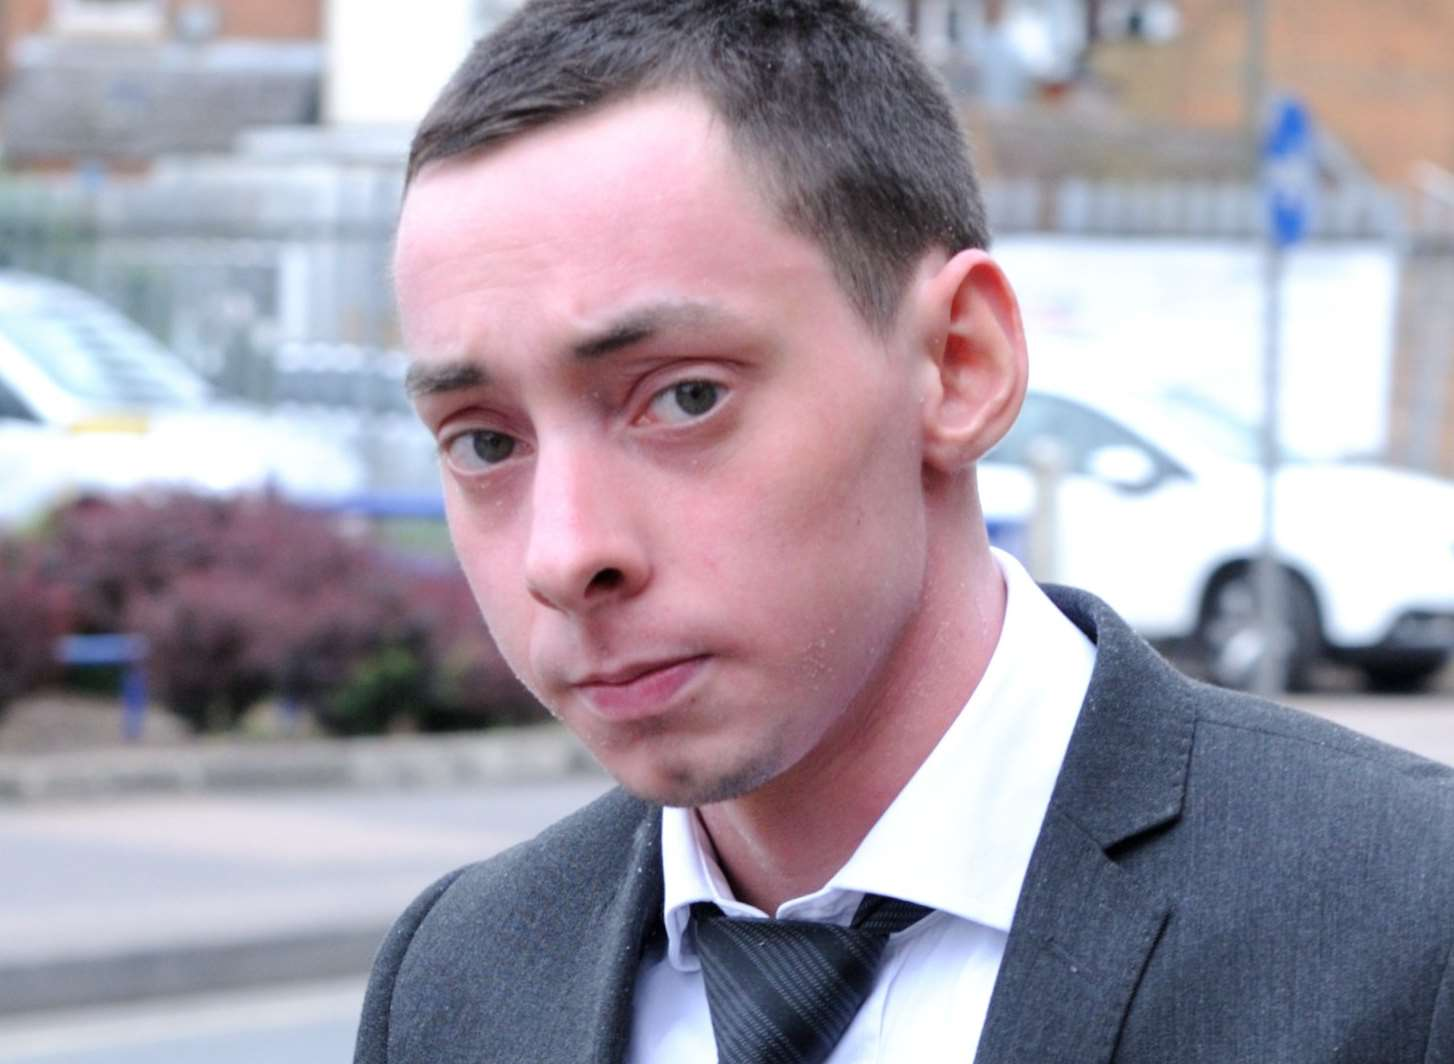 Luke Vicarey, 20, after he escaped jail for throttling his fiancee